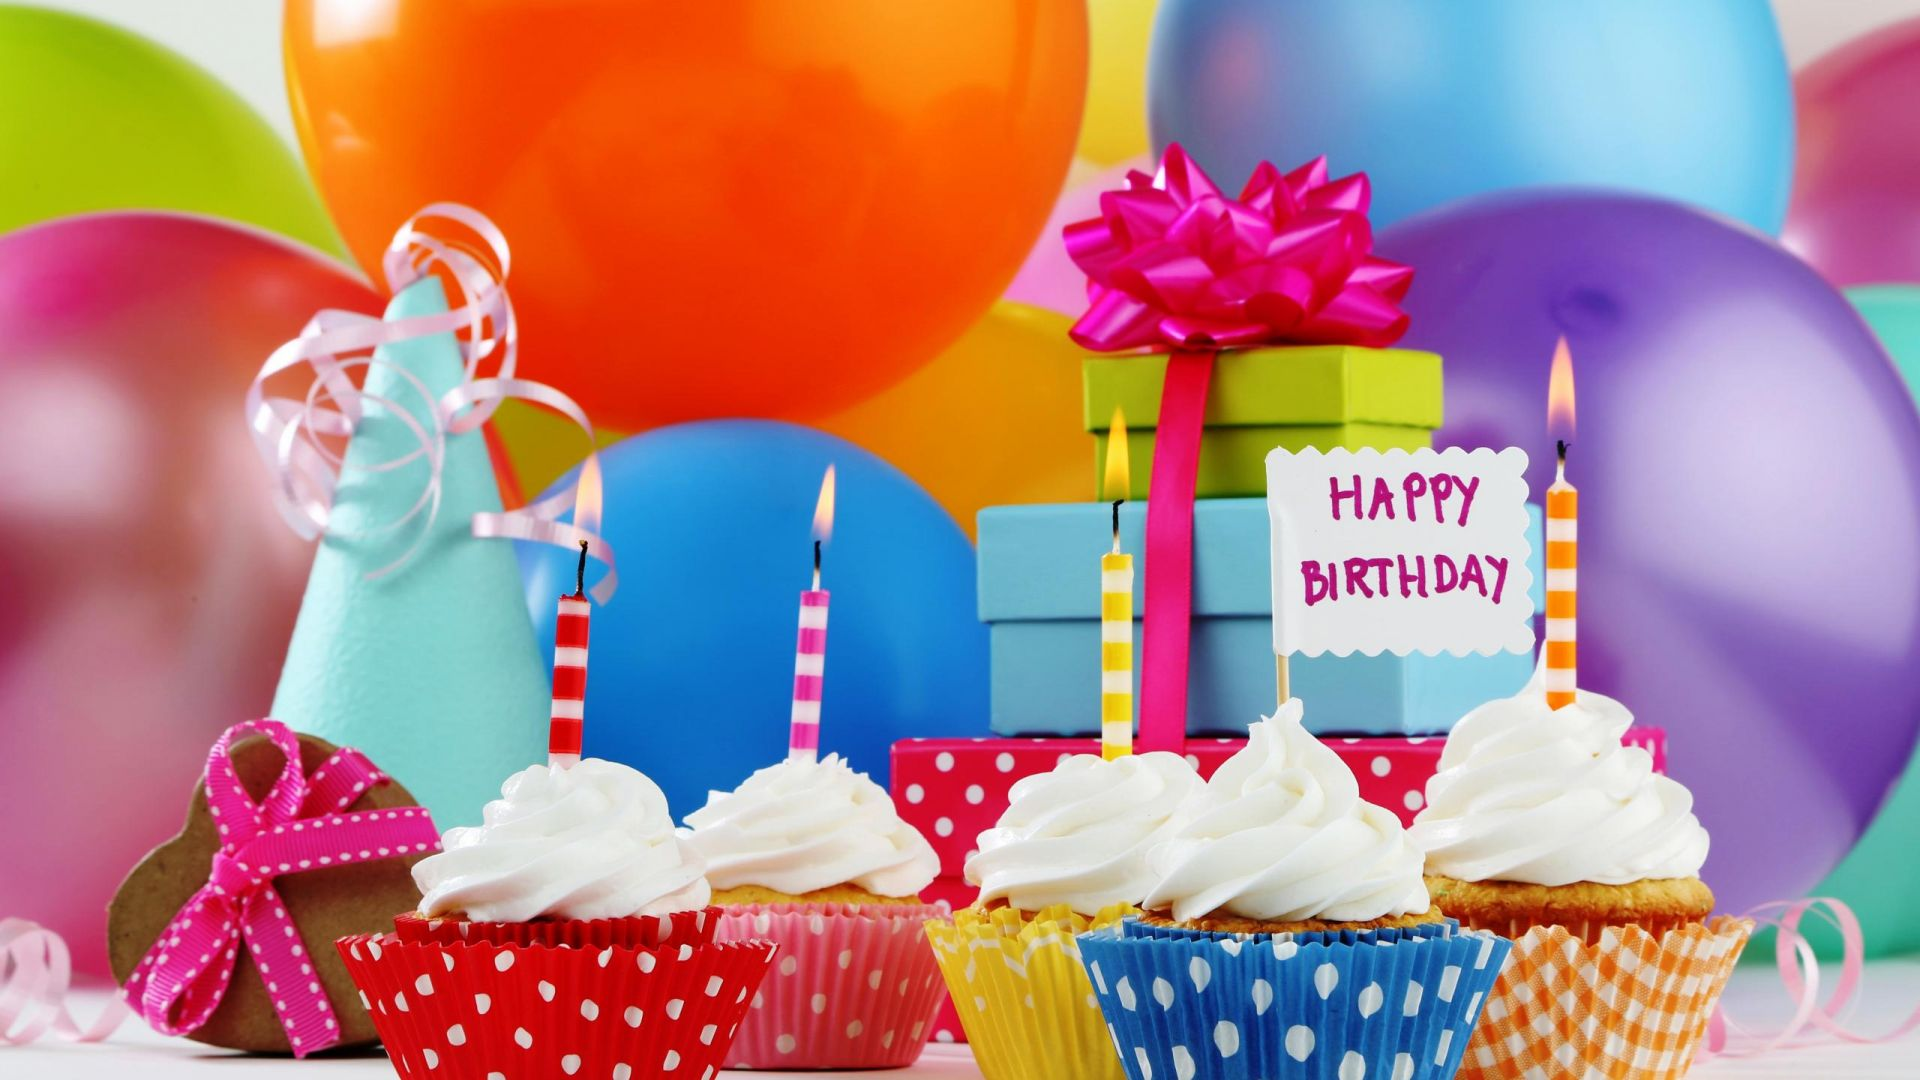 birthday wallpaper free download for mobile ; happy_birthday_balloon_cupcake_gift_wallpaper